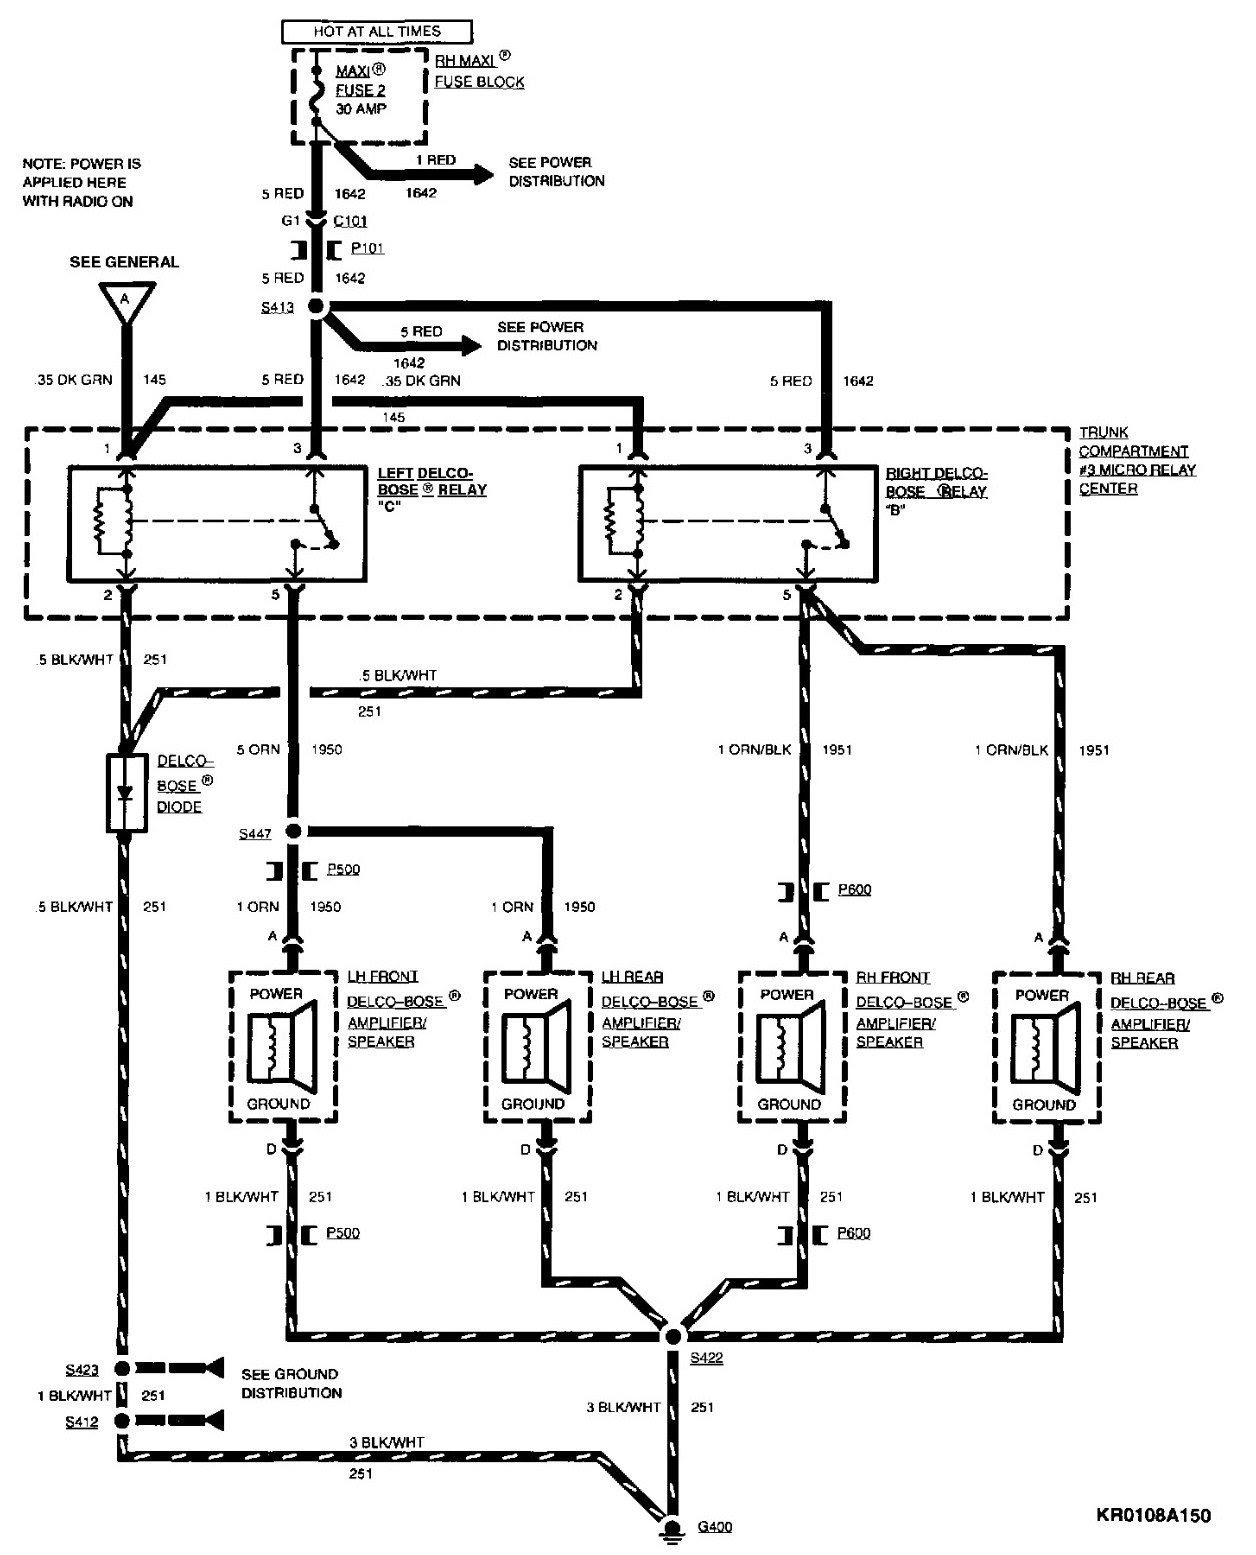 diagram] 2005 corvette bose wiring diagram full version hd quality wiring  diagram - diagramaimeem.camperlot.it  camperlot